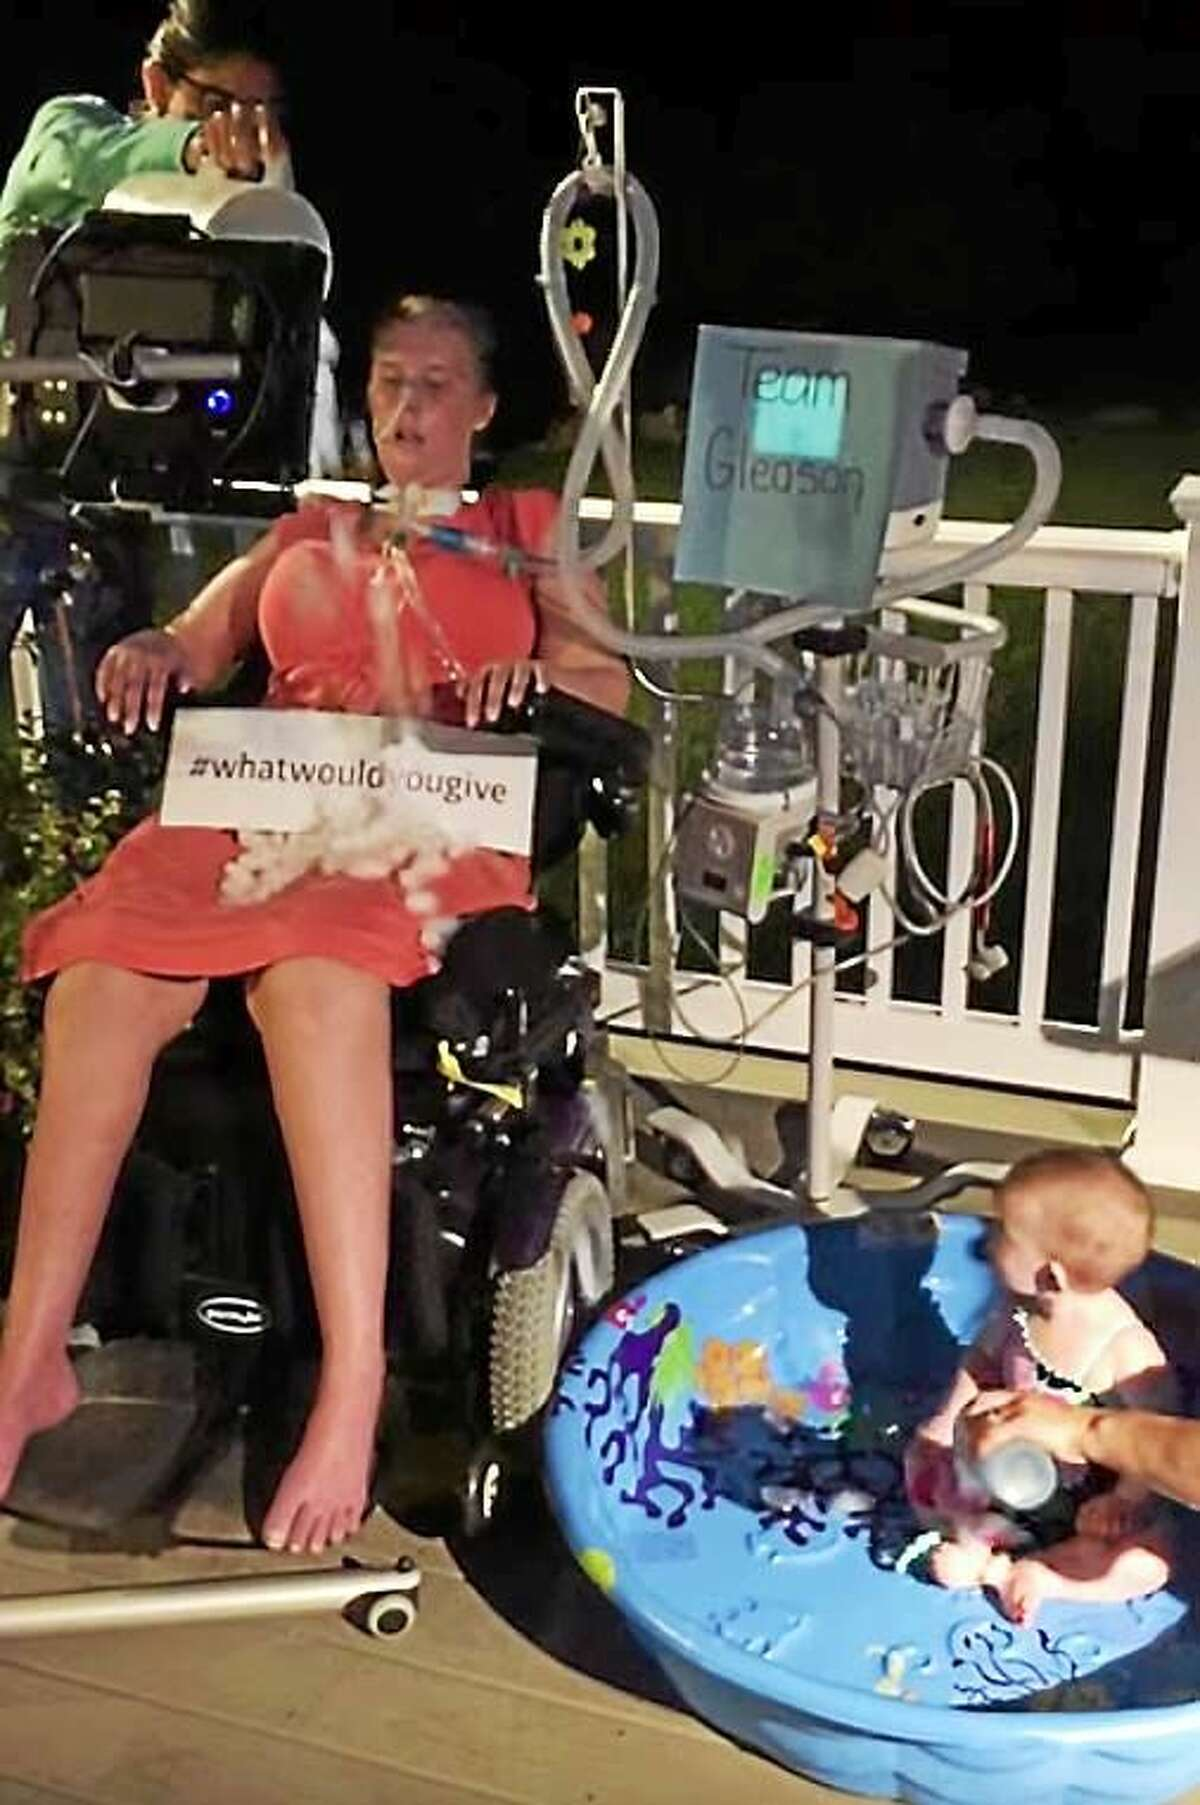 Amanda Bernier and her daughter, Arabella, as she does the ALS Ice Bucket Challenge for the second time in 2015 in this screenshot taken from a YouTube video posted on her Facebook page Amanda's Angels.